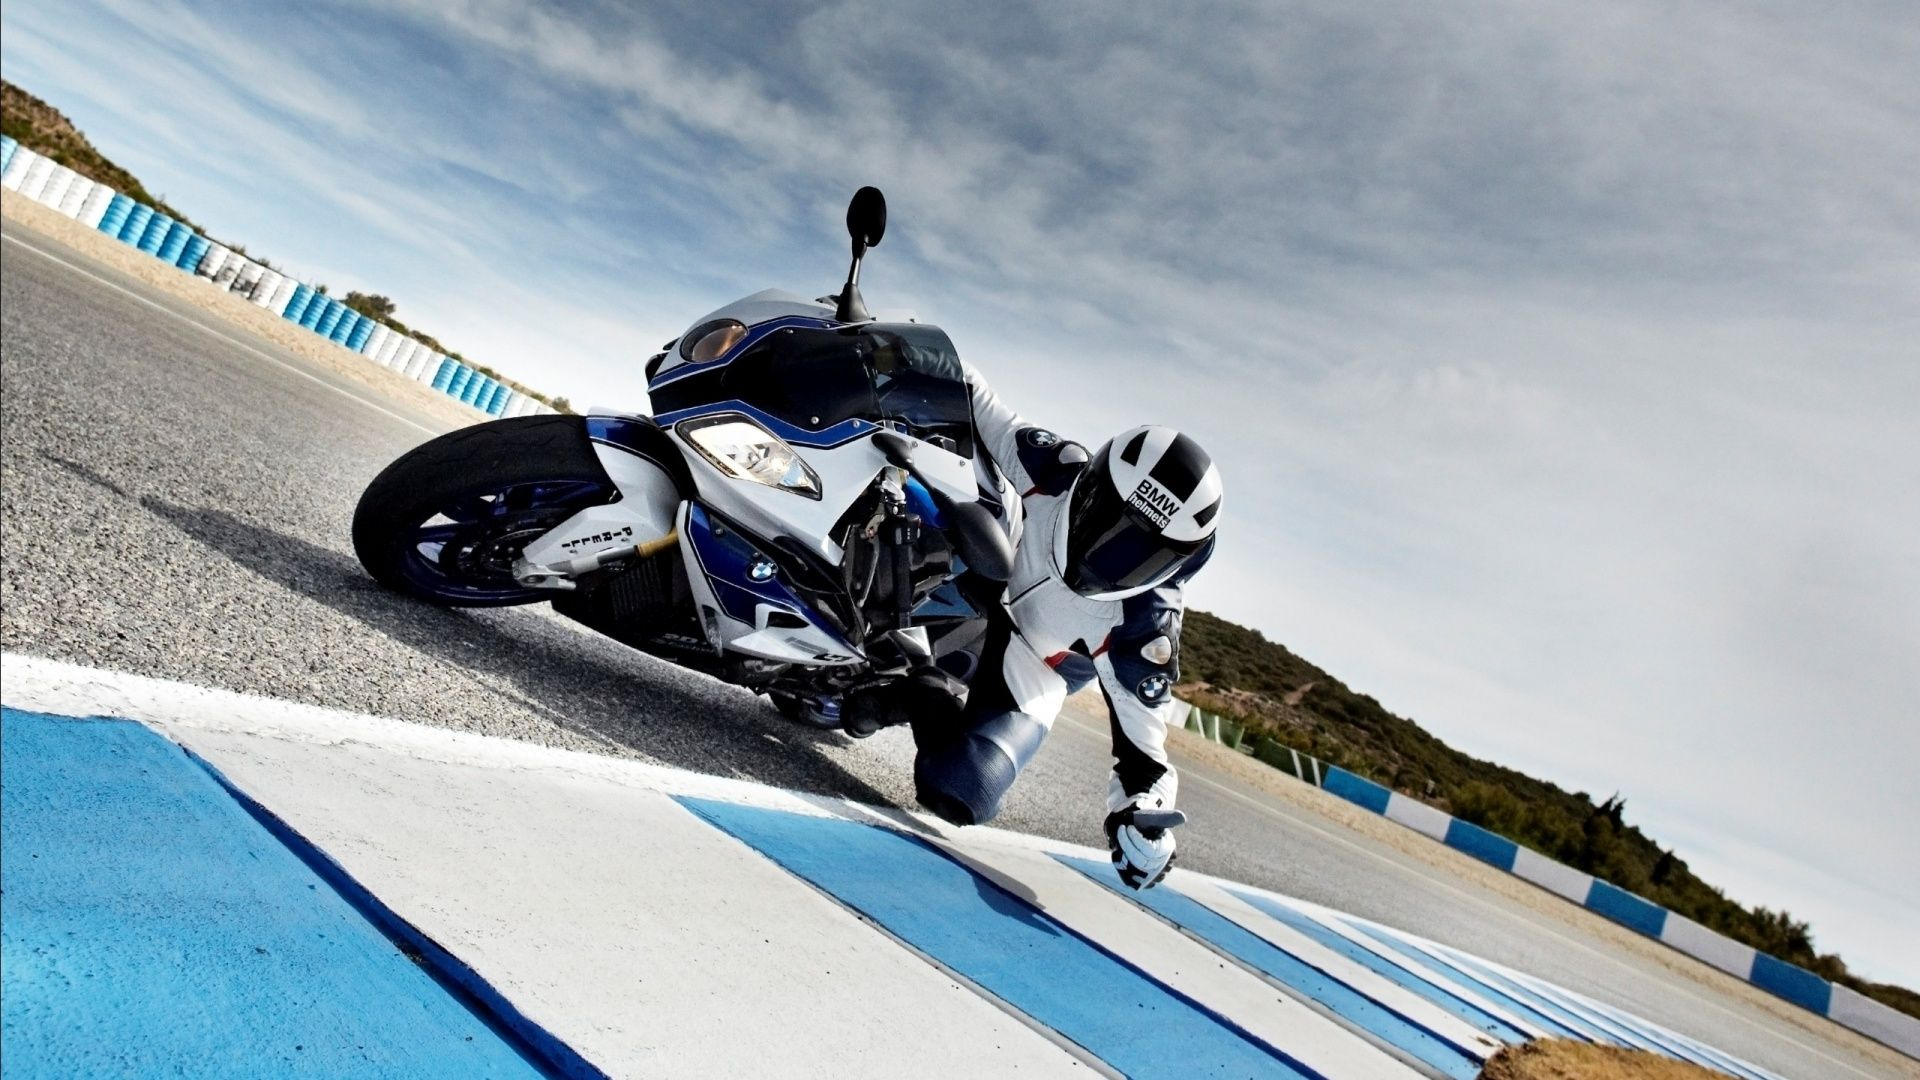 sportbike wallpapers sportbike hdq pics guanch wallpapers